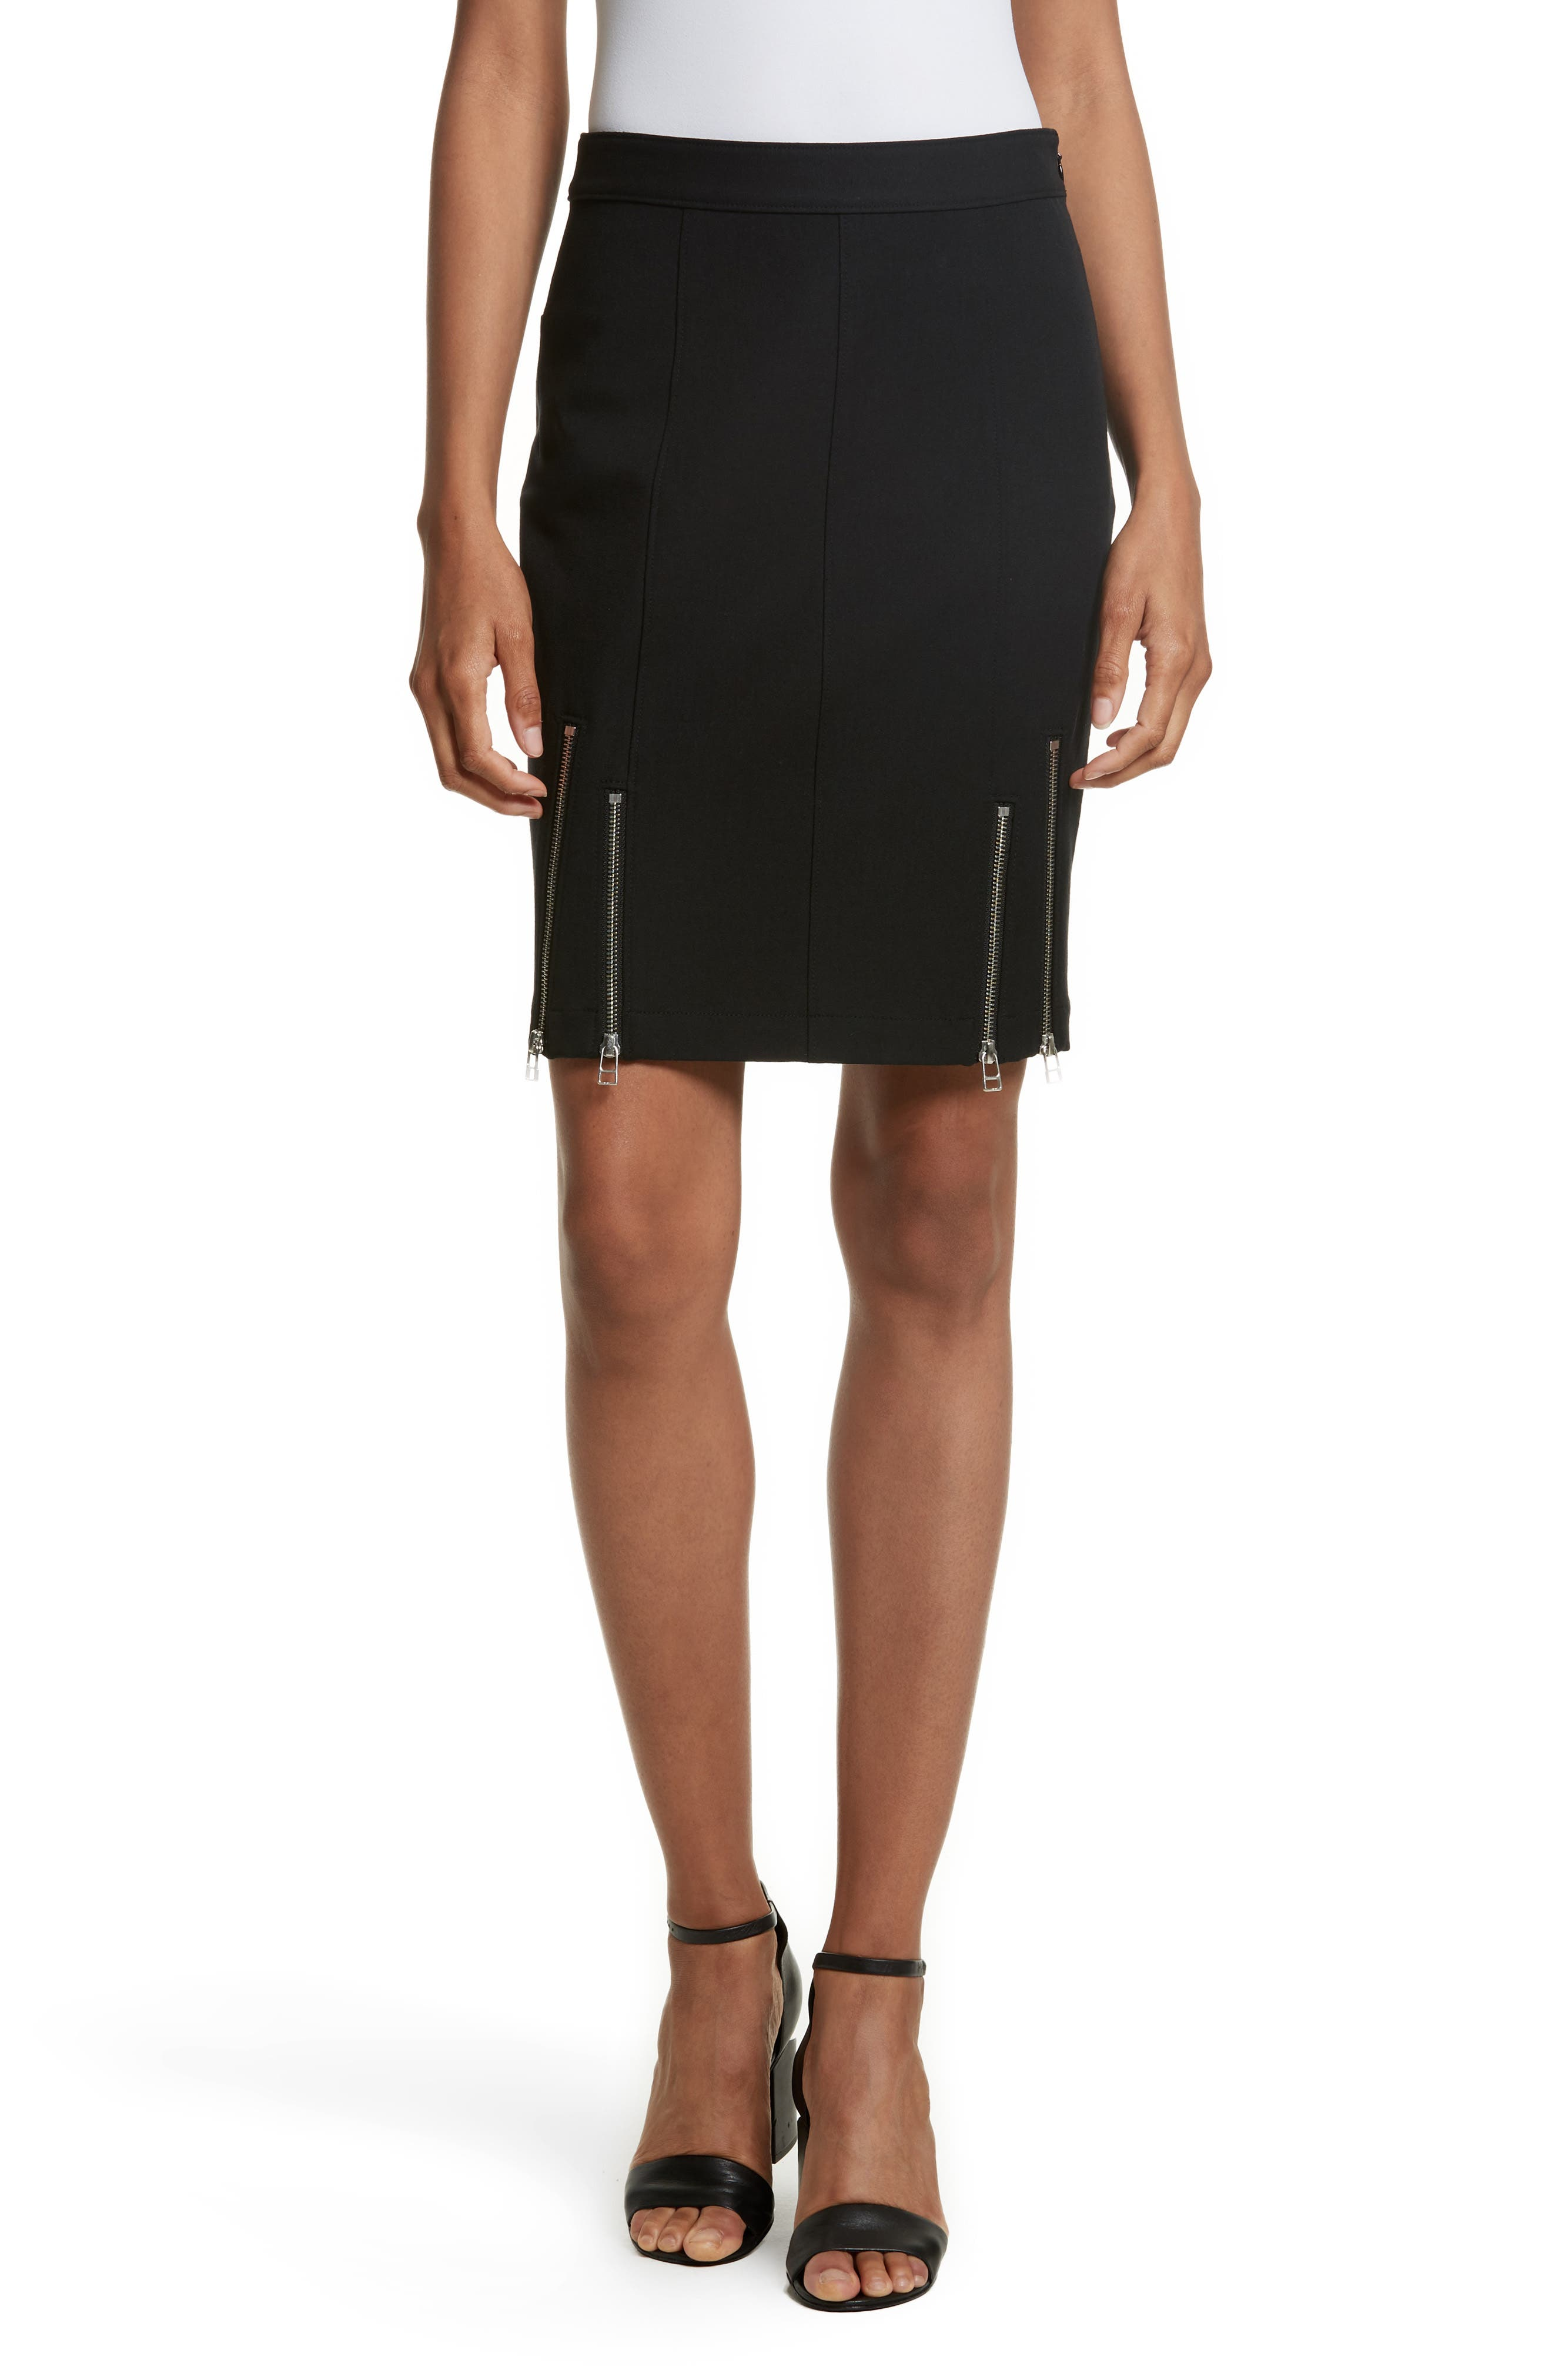 Alternate Image 1 Selected - T by Alexander Wang Zip Detail Knit Pencil Skirt